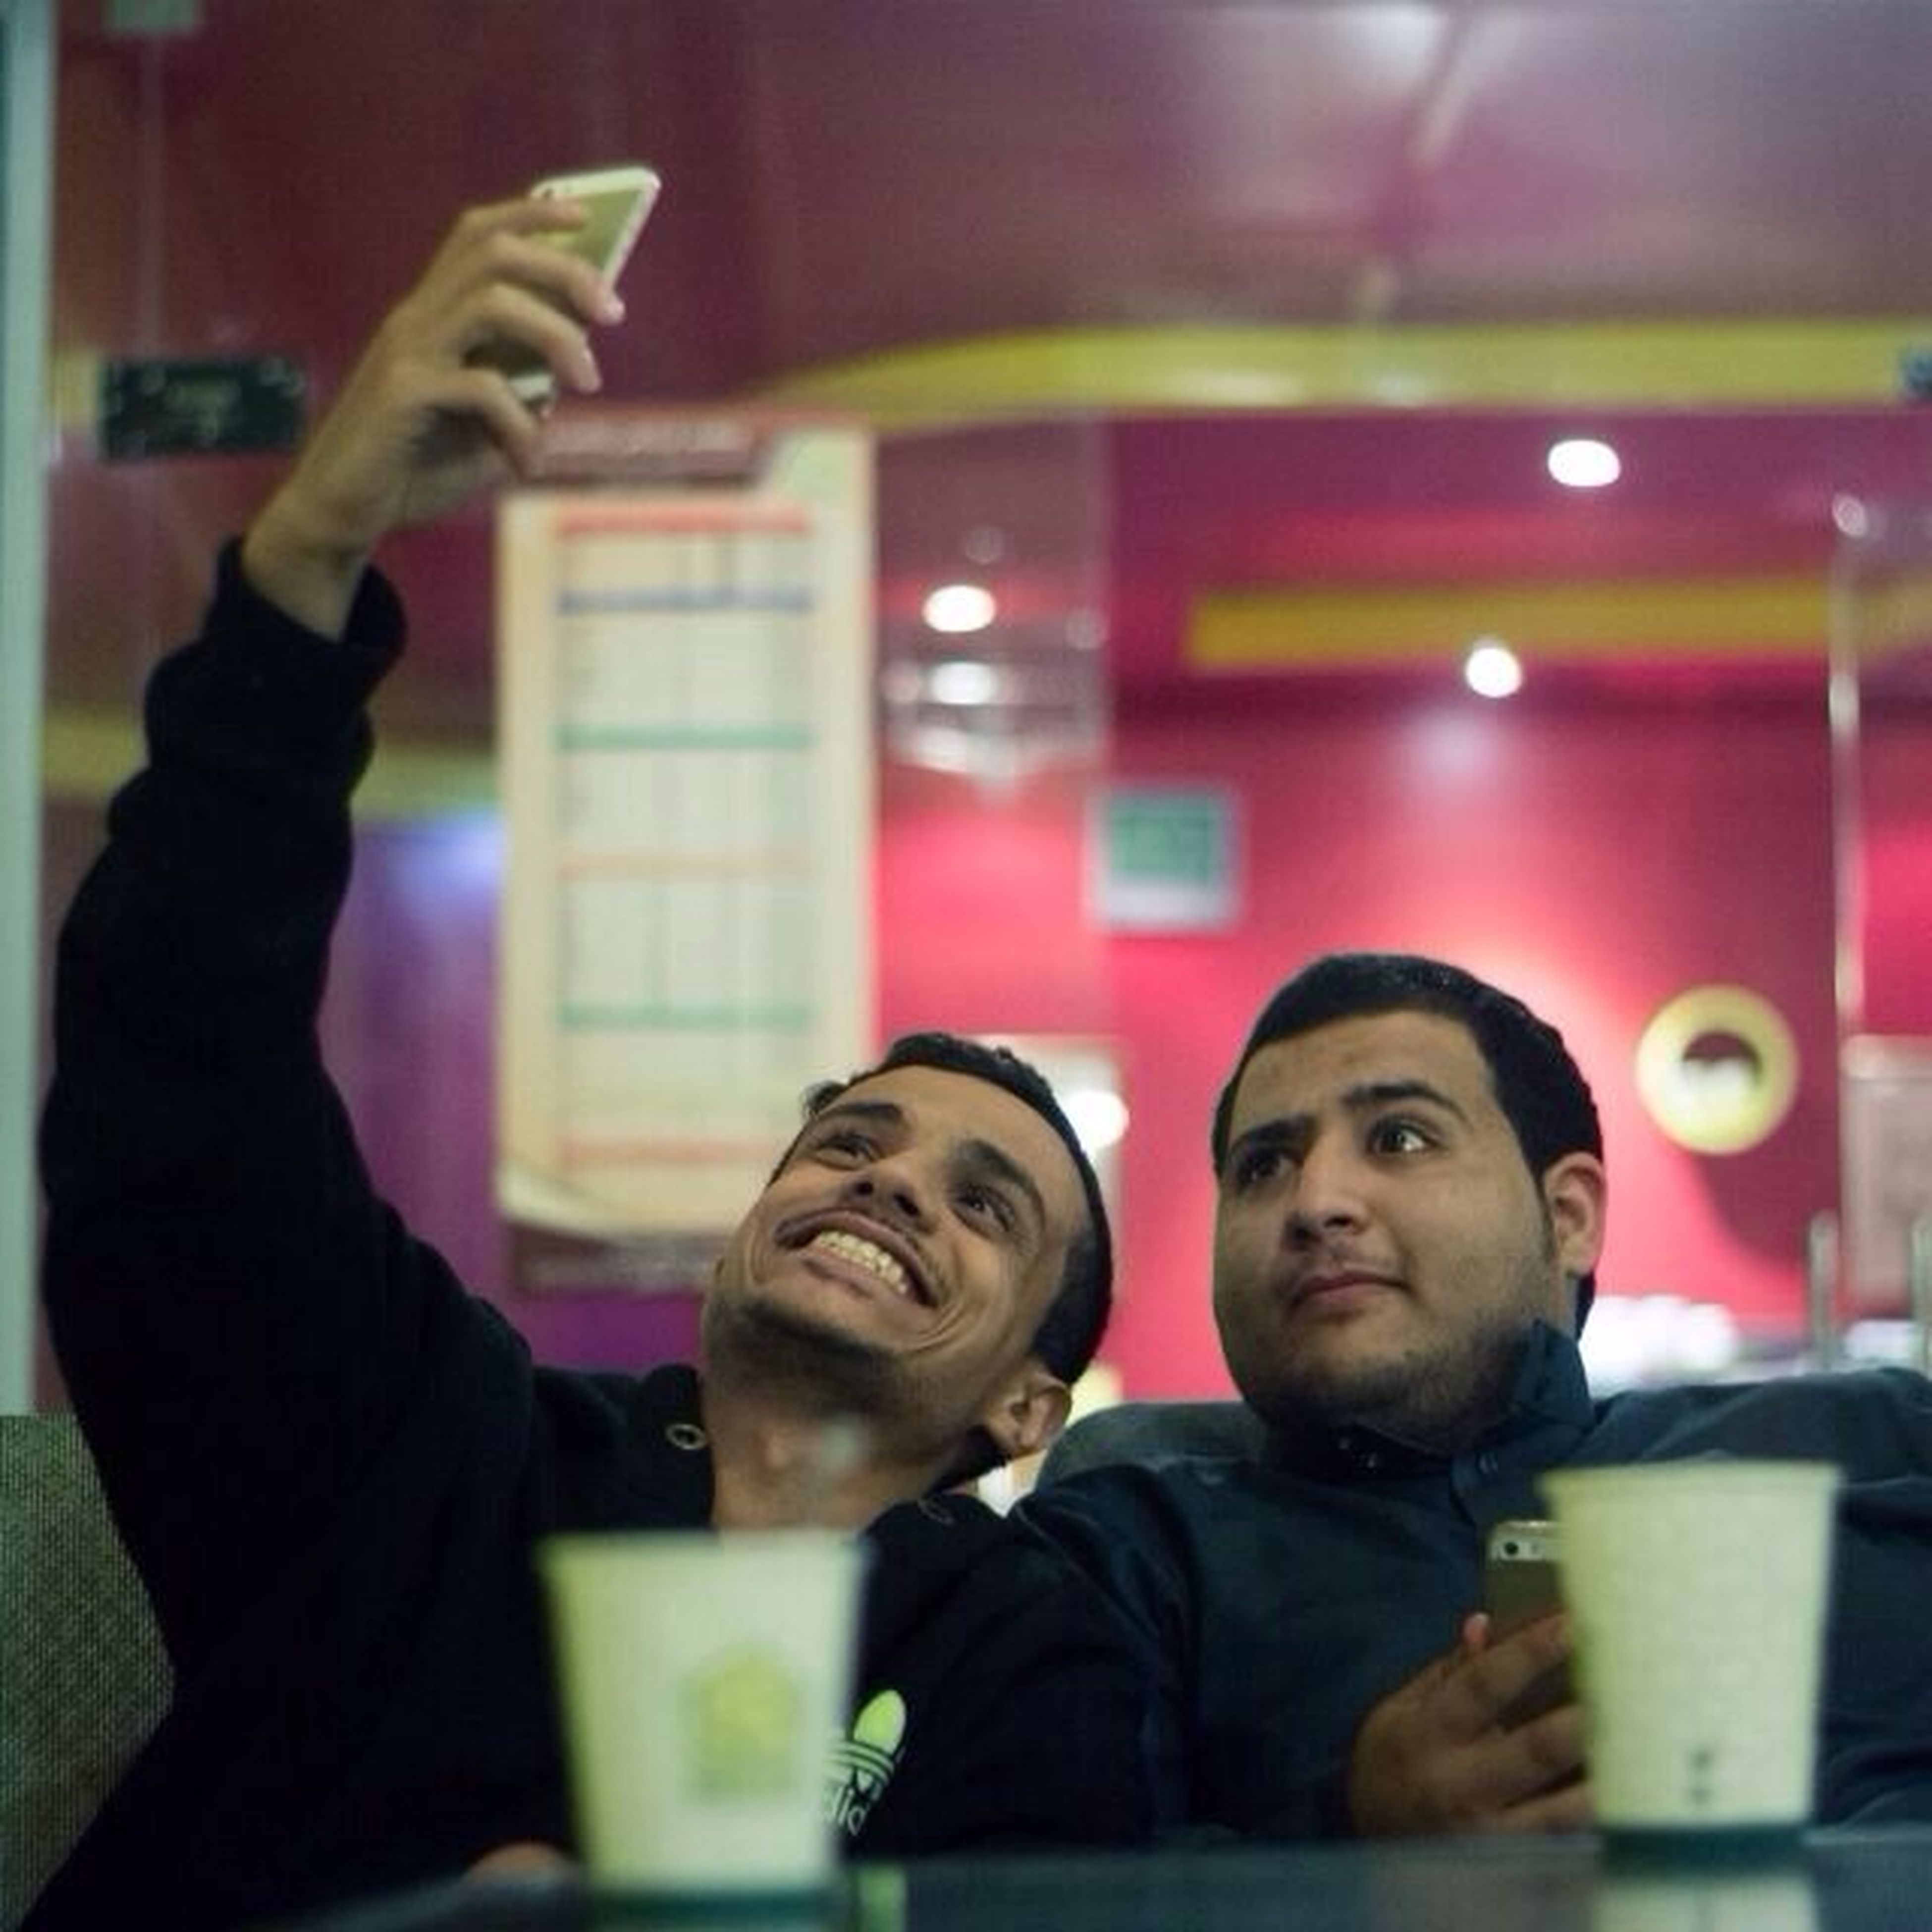 indoors, lifestyles, togetherness, leisure activity, casual clothing, bonding, person, boys, young men, illuminated, love, childhood, technology, holding, photographing, three quarter length, waist up